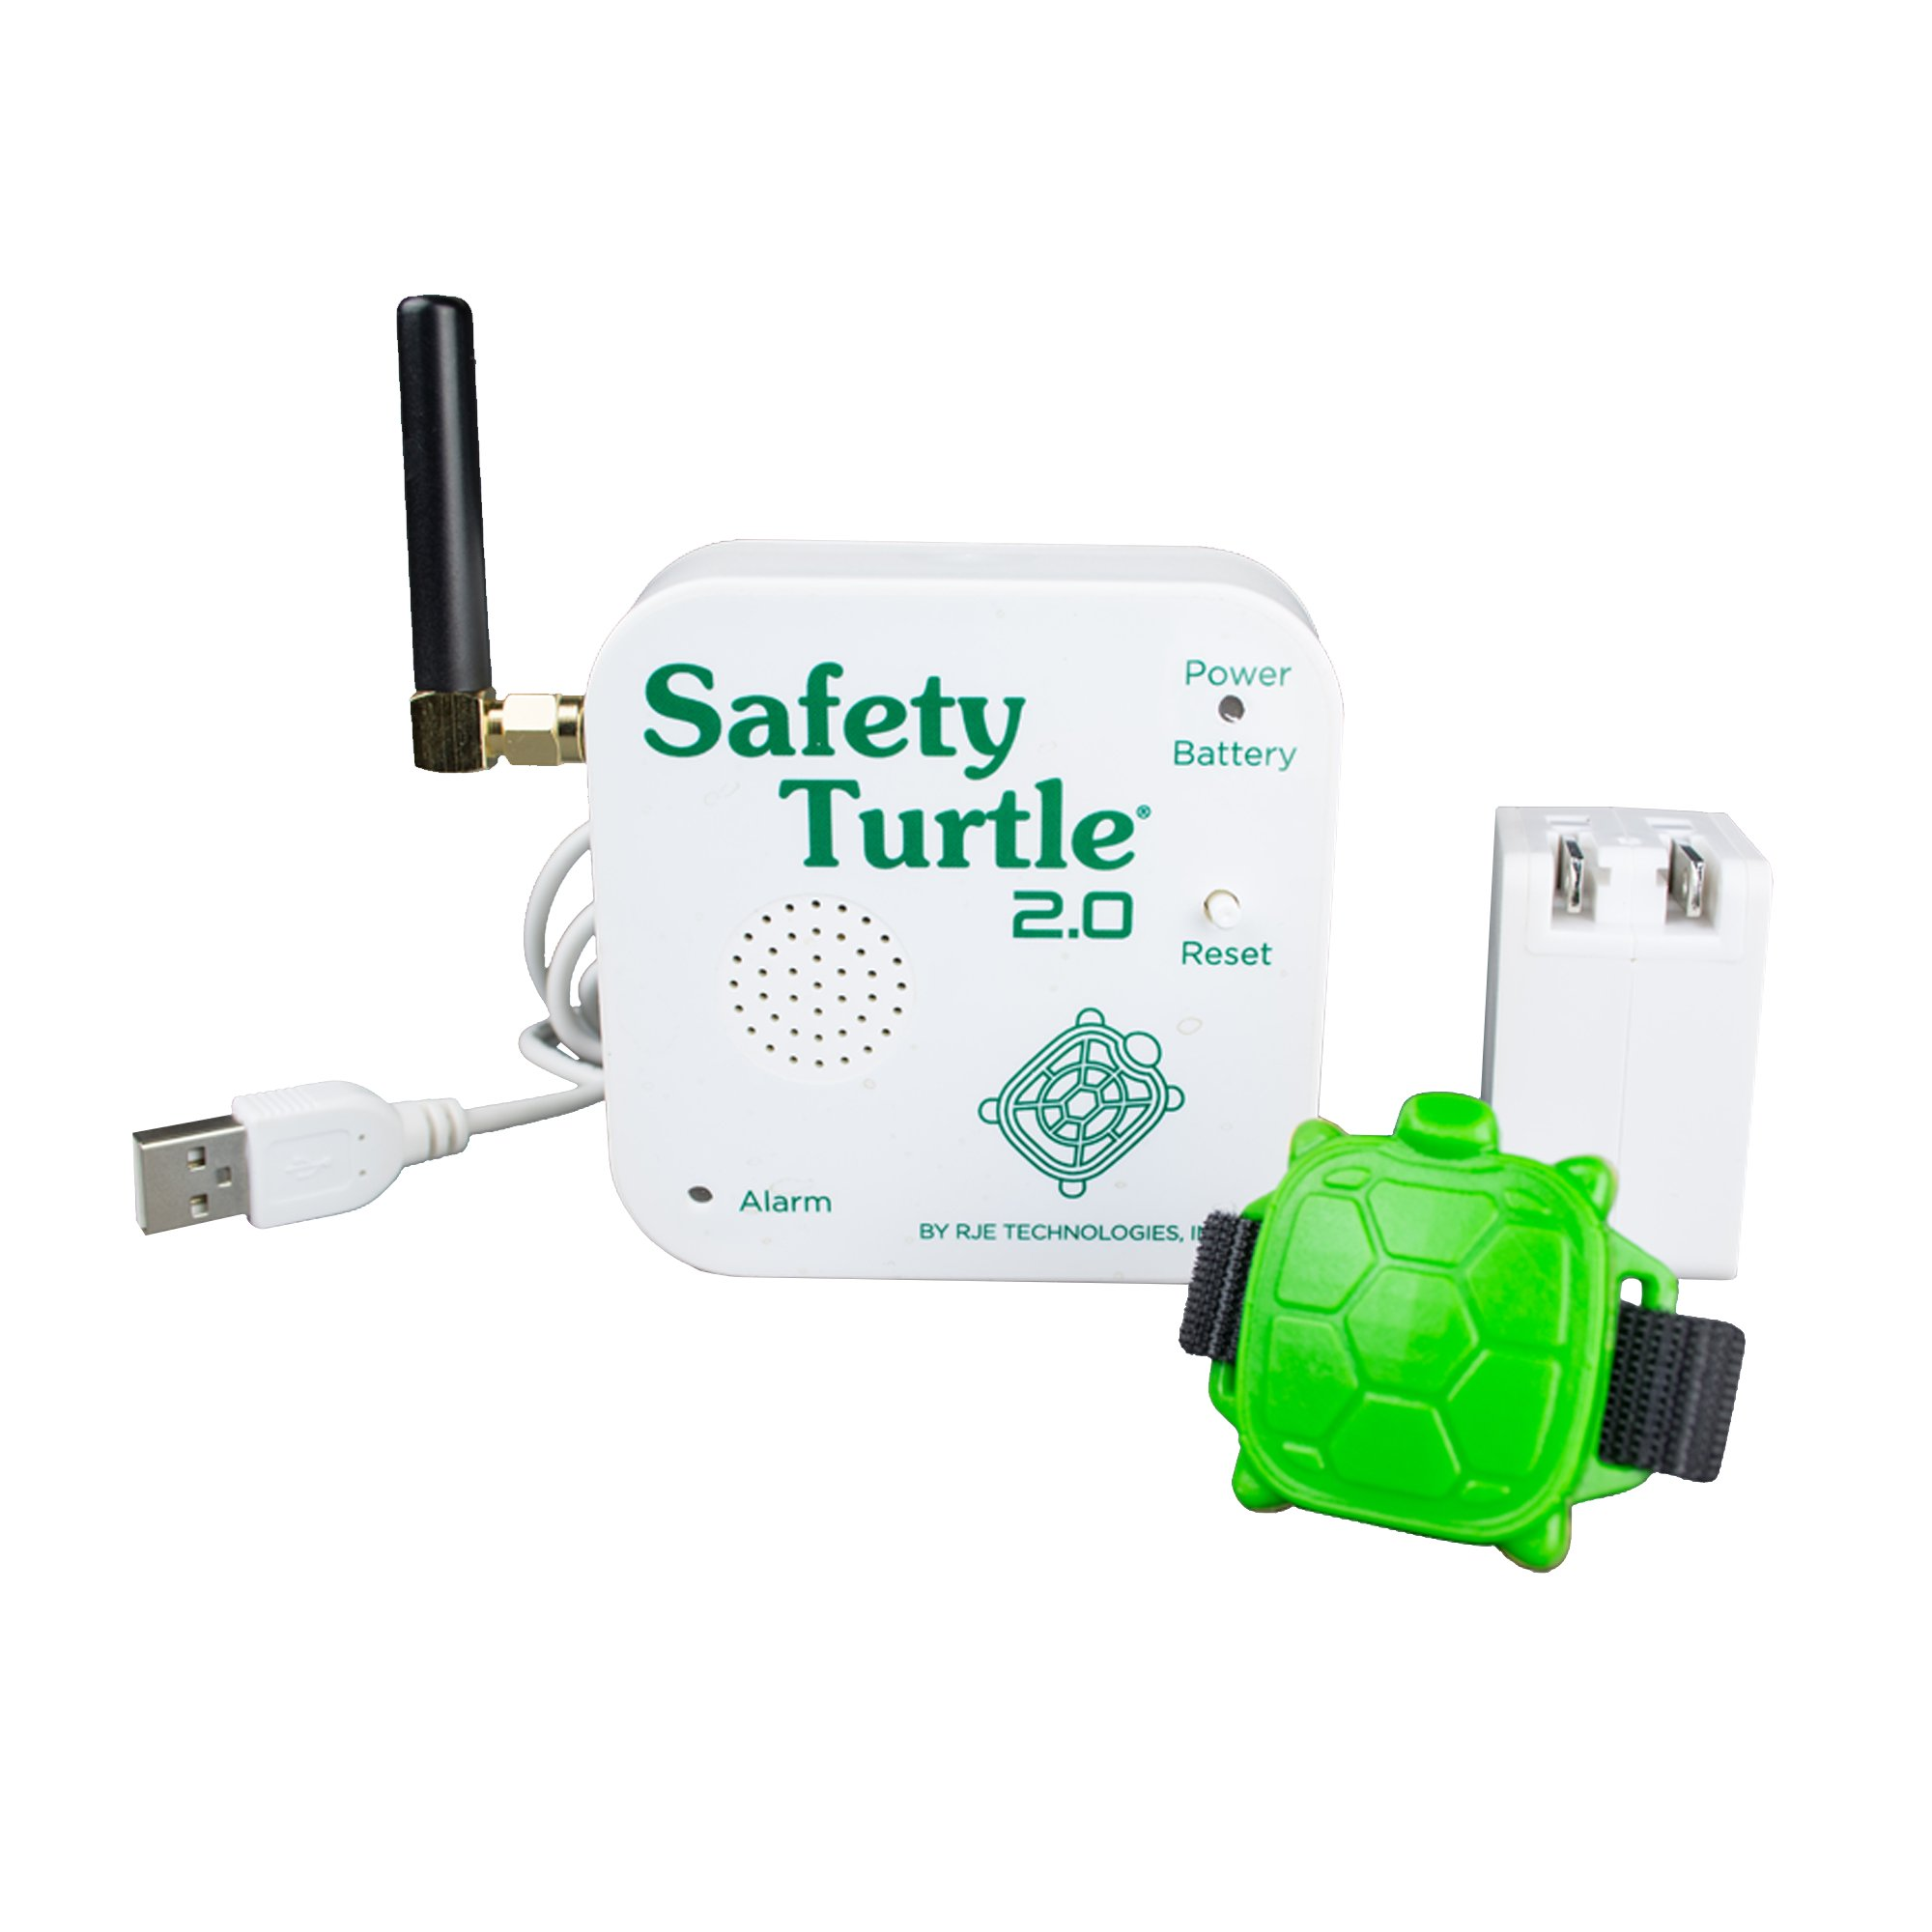 Safety Turtle 2.0 Pet Pool Alarm Kit